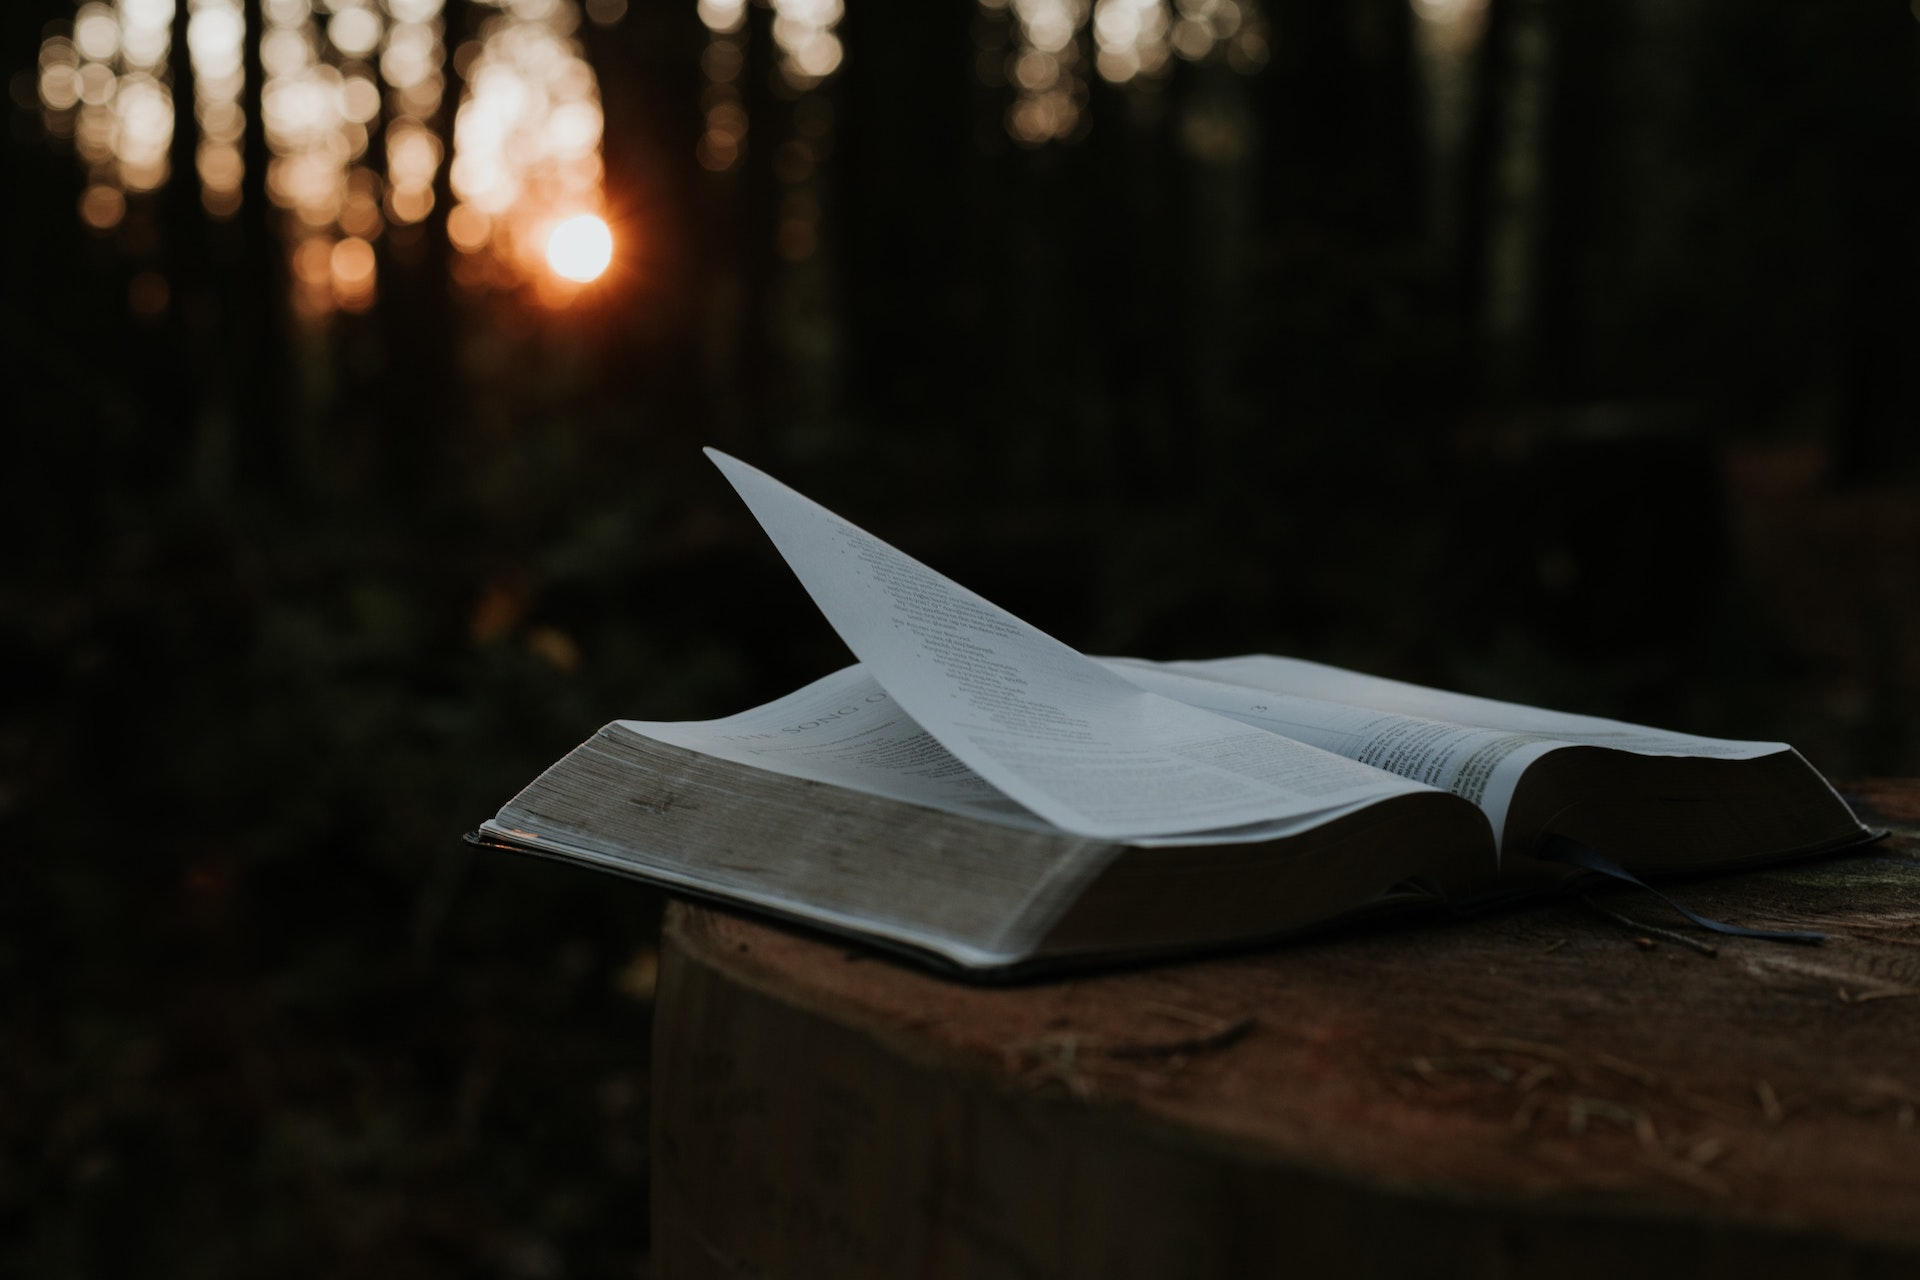 A open bible on a table in a forest.